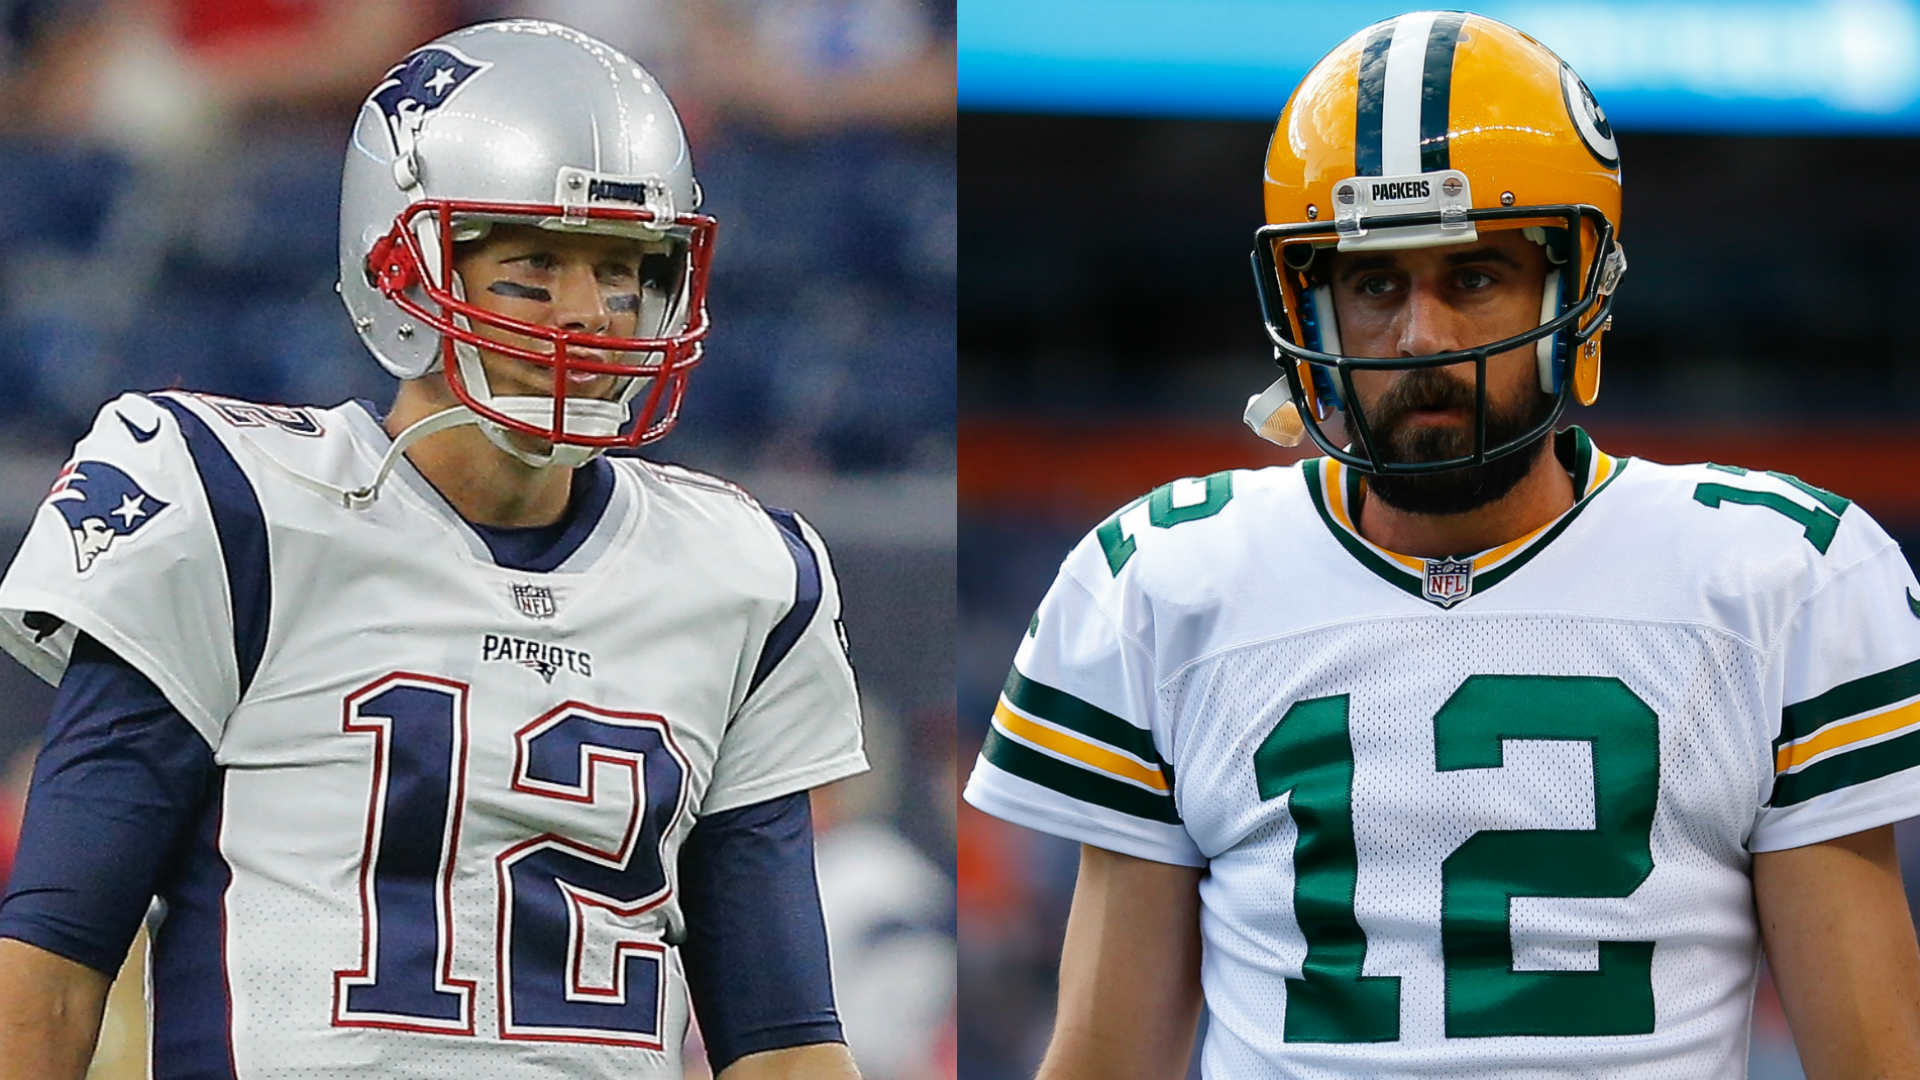 Robert Kraft releases statement on Trump while Brady likes Aaron Rodgers Instagram